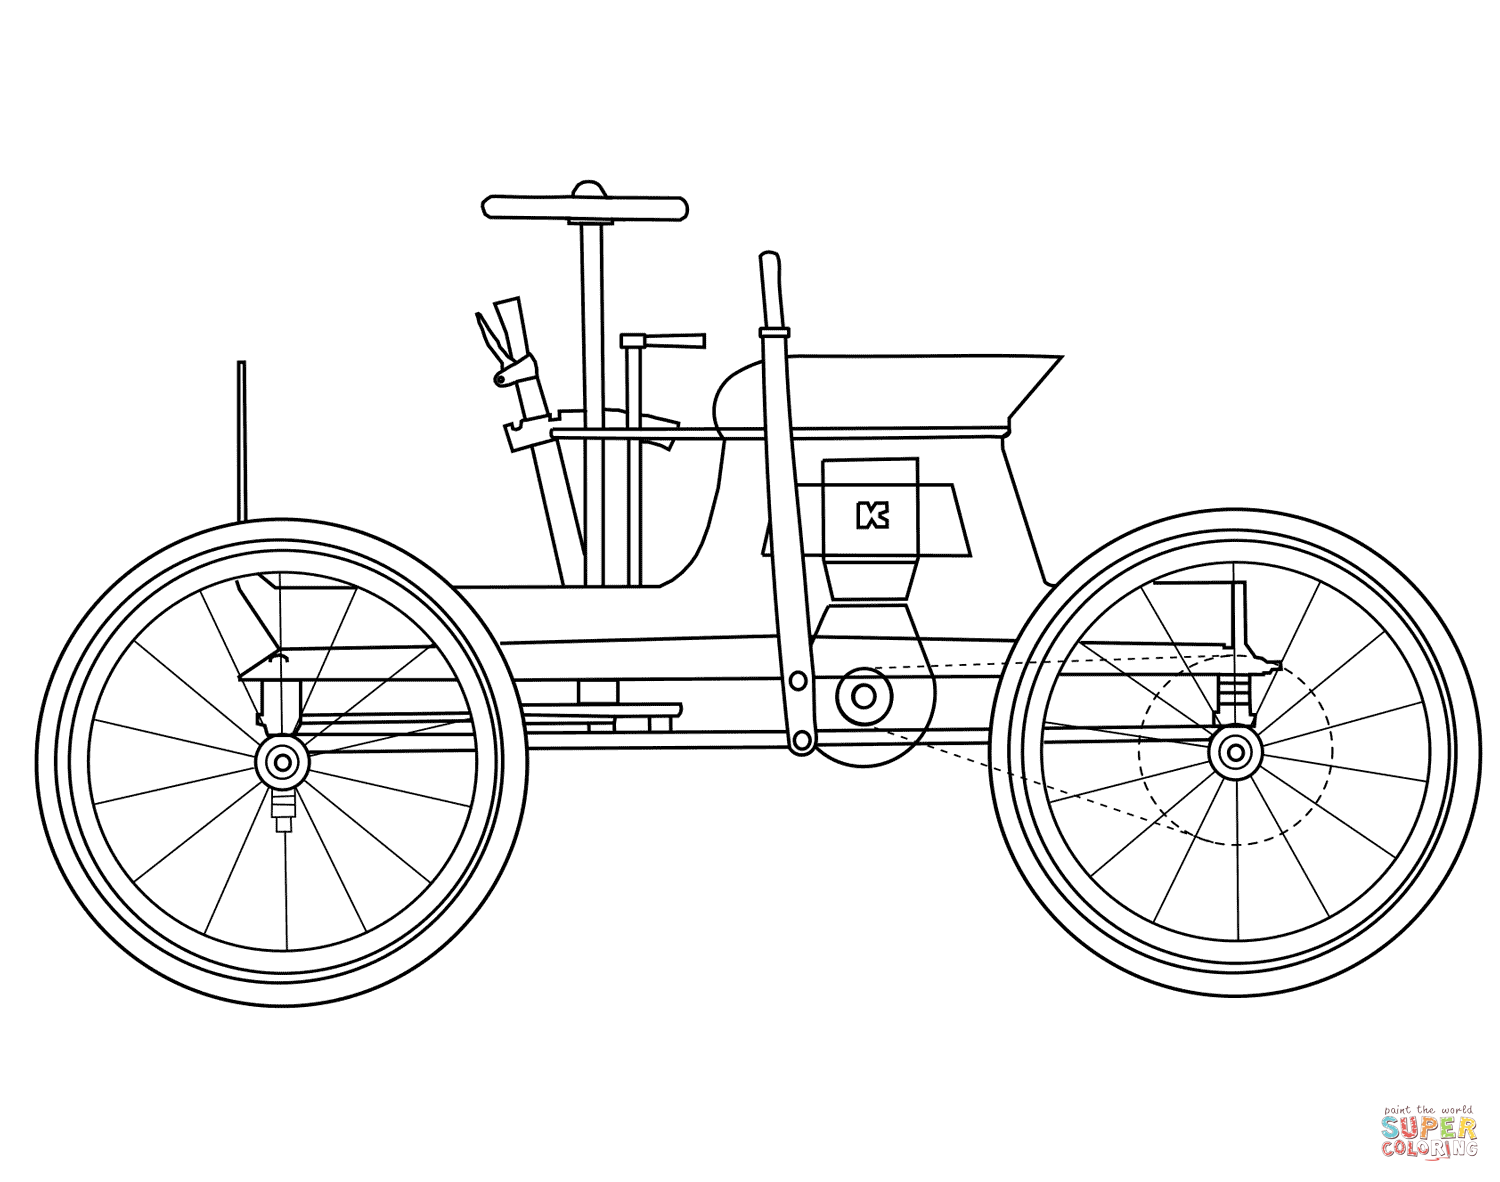 Car top view drawing at getdrawings free for personal use car